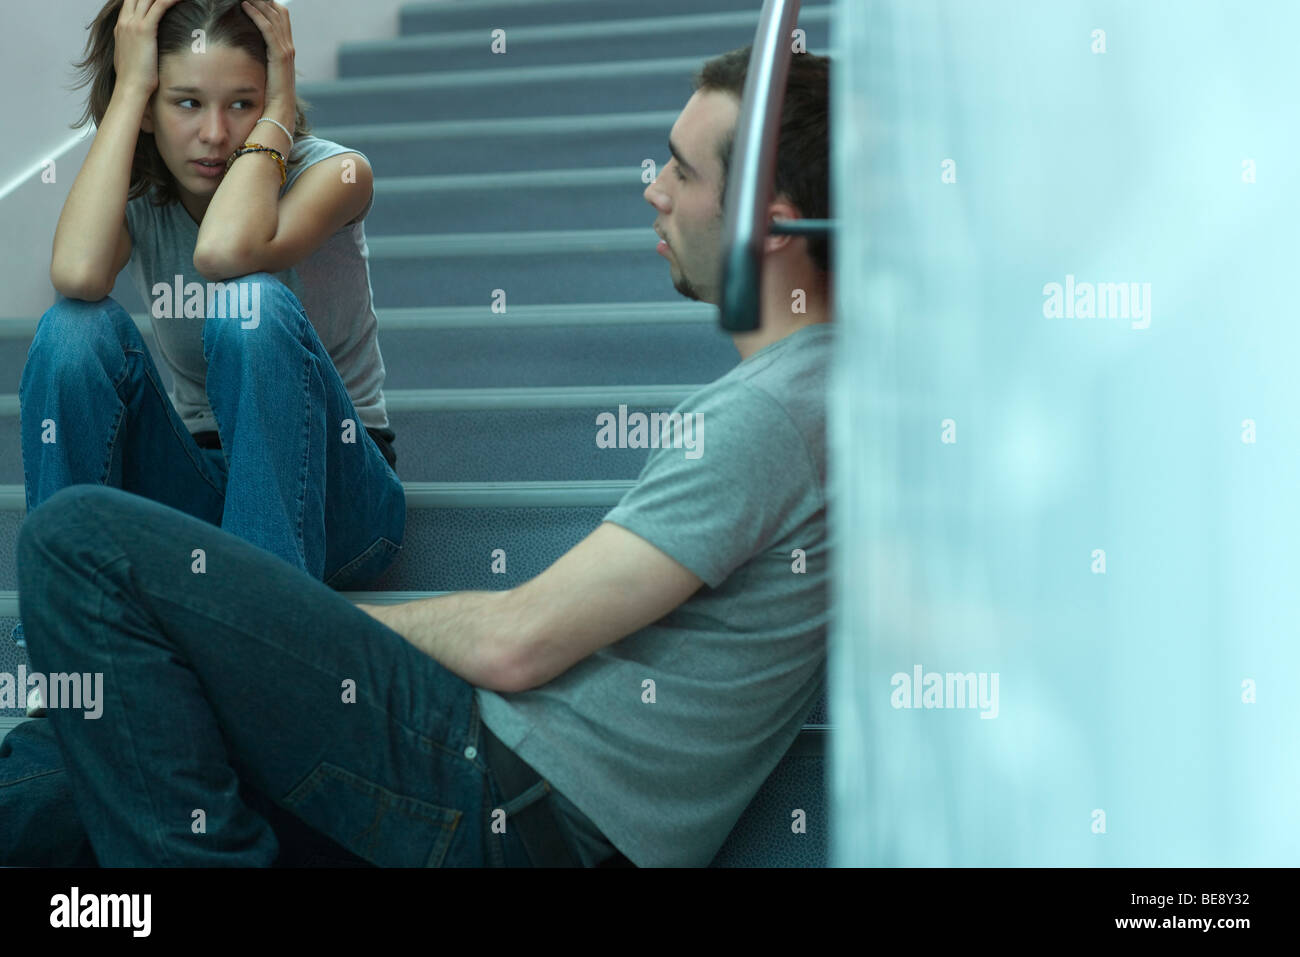 Young couple sitting on stairs, having tense conversation - Stock Image